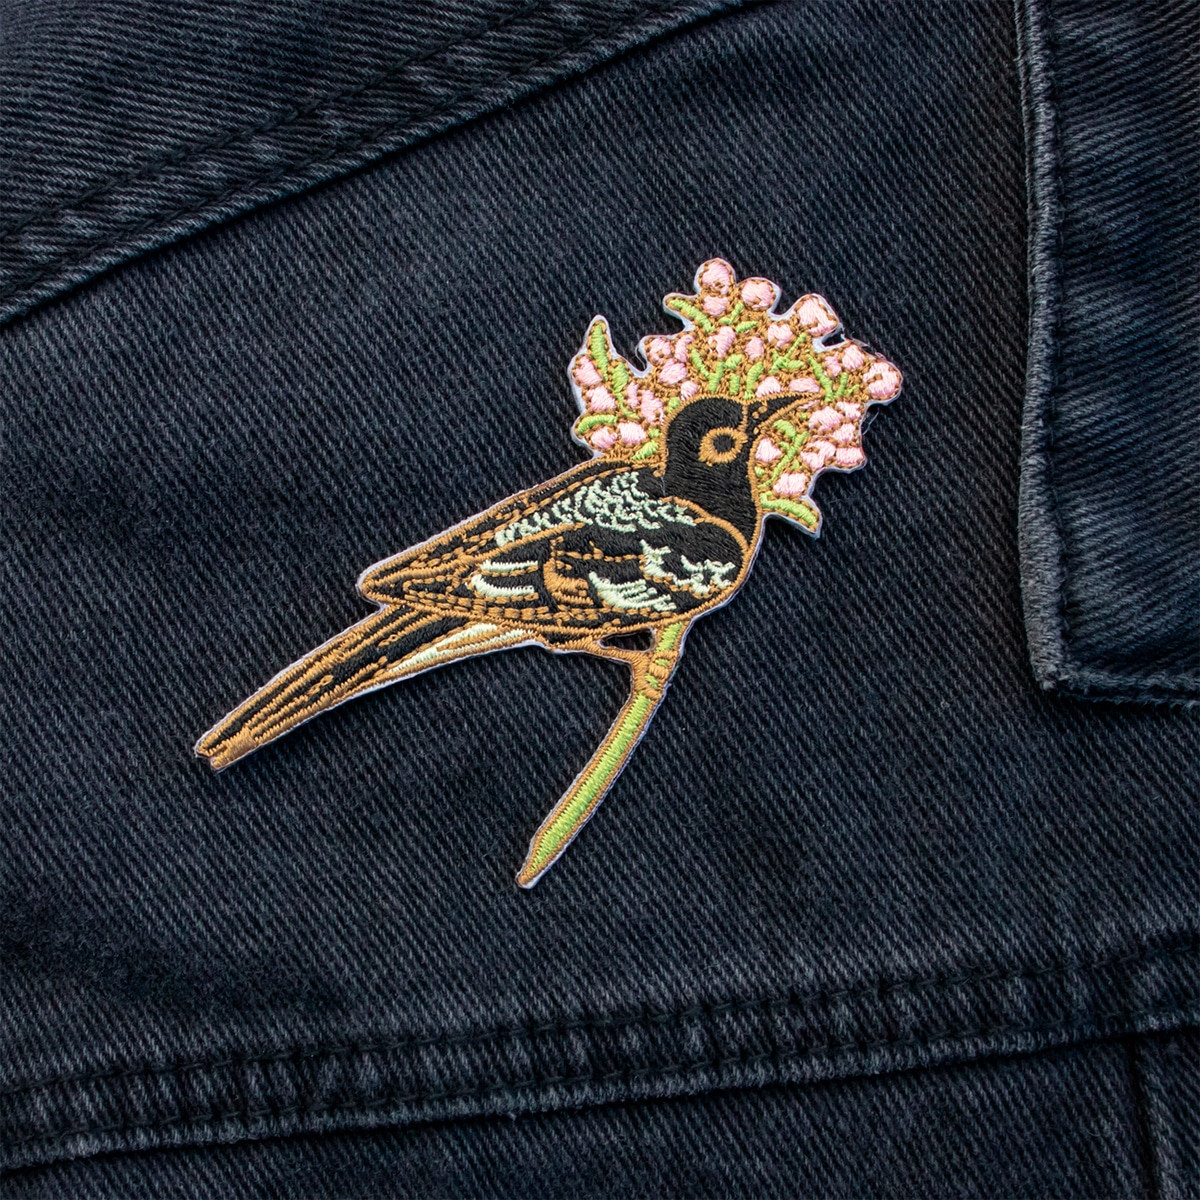 Honeyeater Iron On Patch By Oh Jessica Jessica